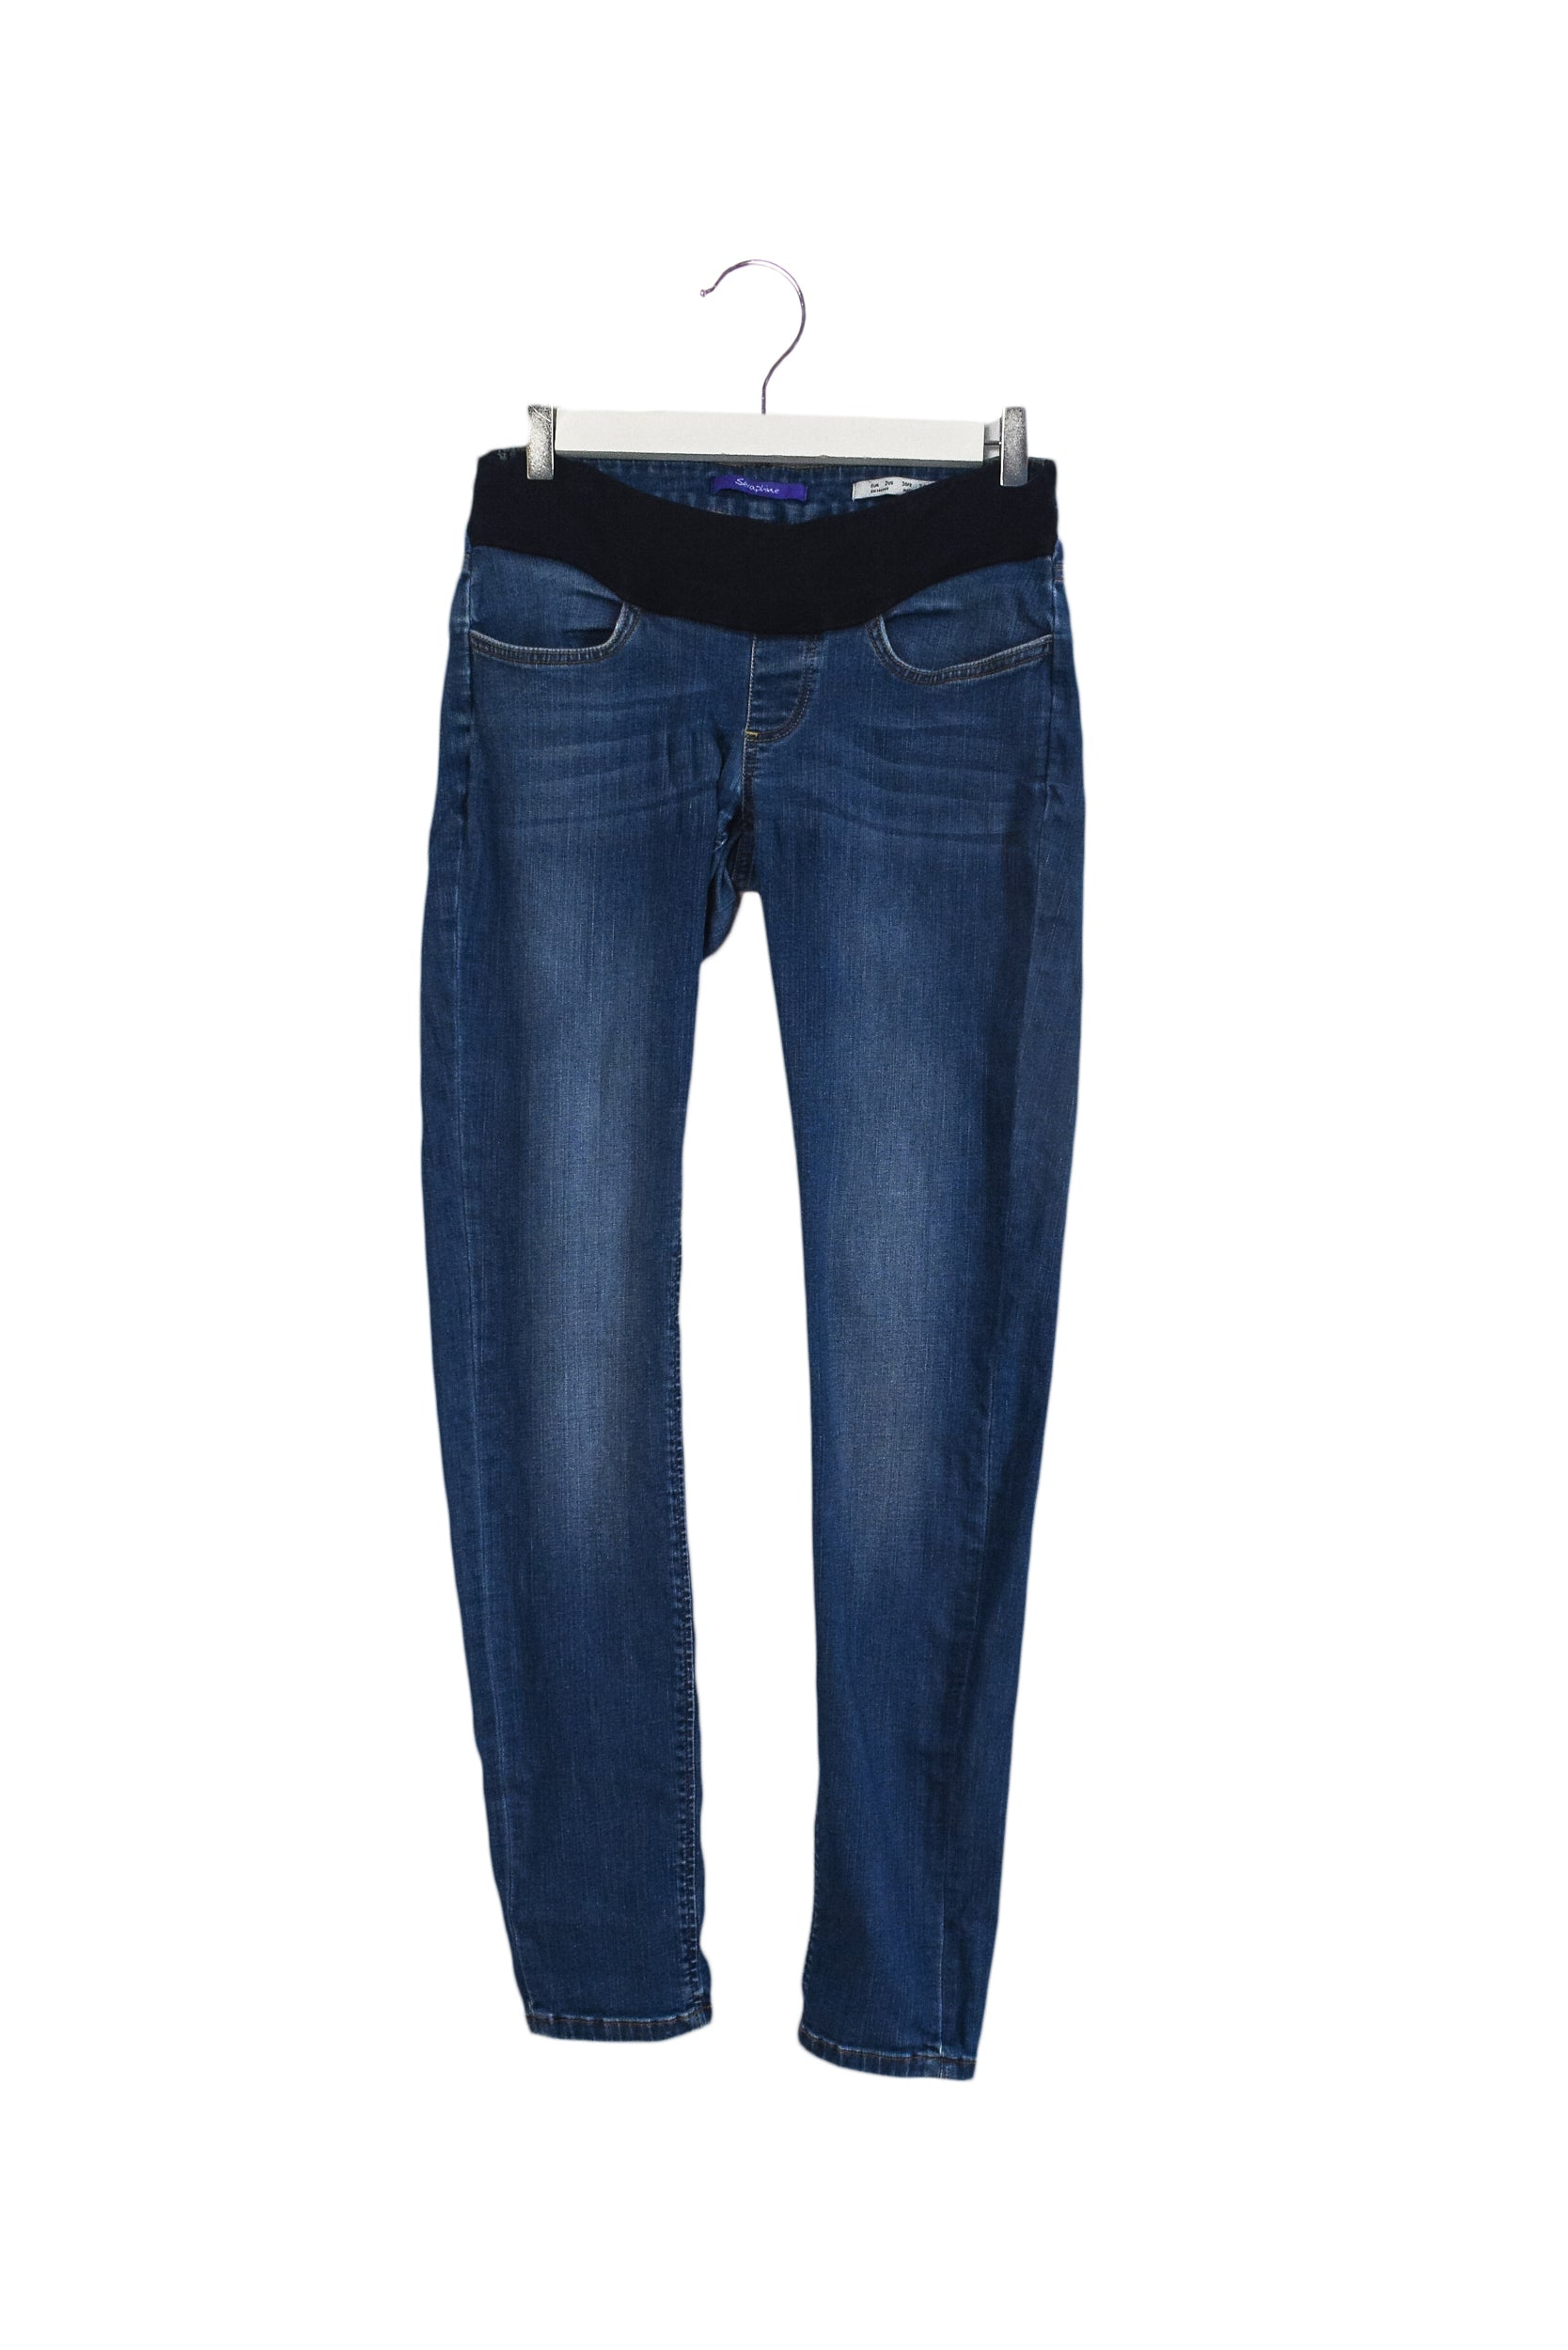 Maternity Jeans XS (US2) at Retykle